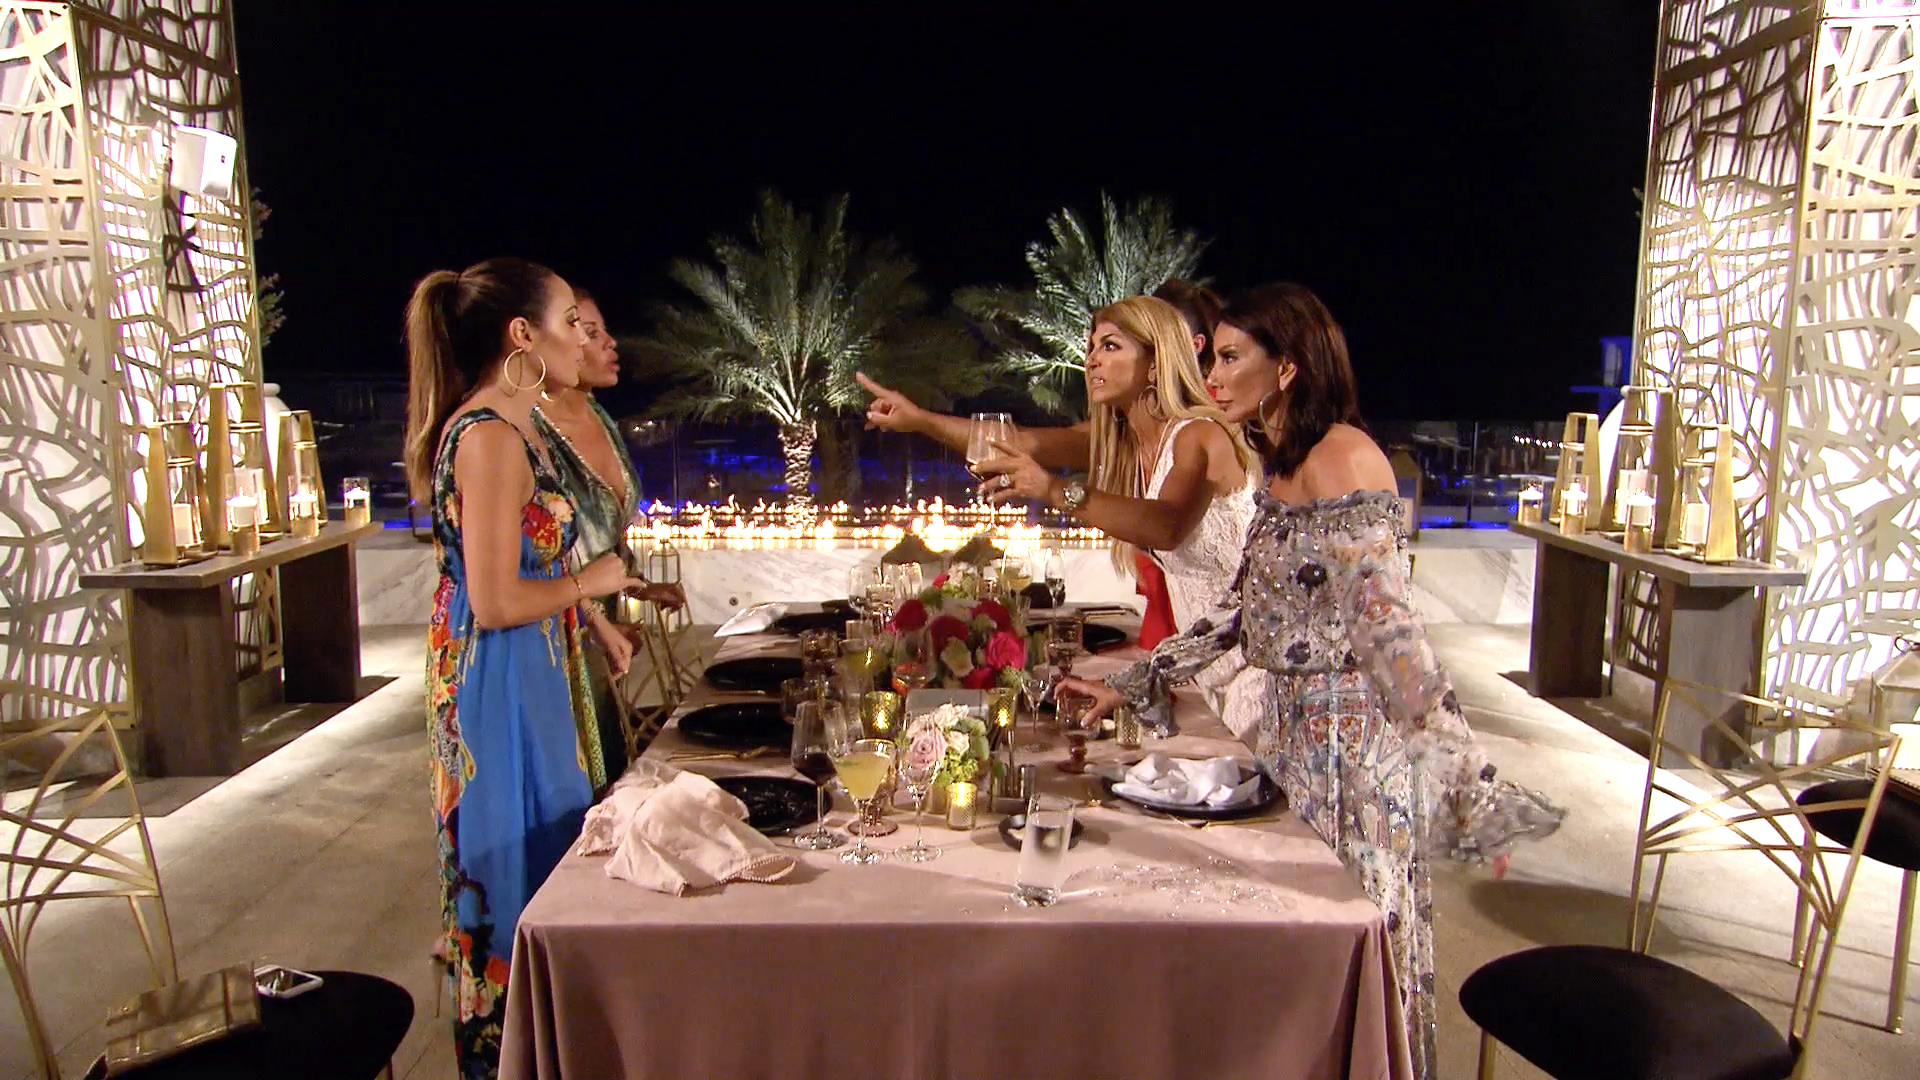 Real Housewives of New Jersey Season 9 Trailer, Premiere Date | The ...